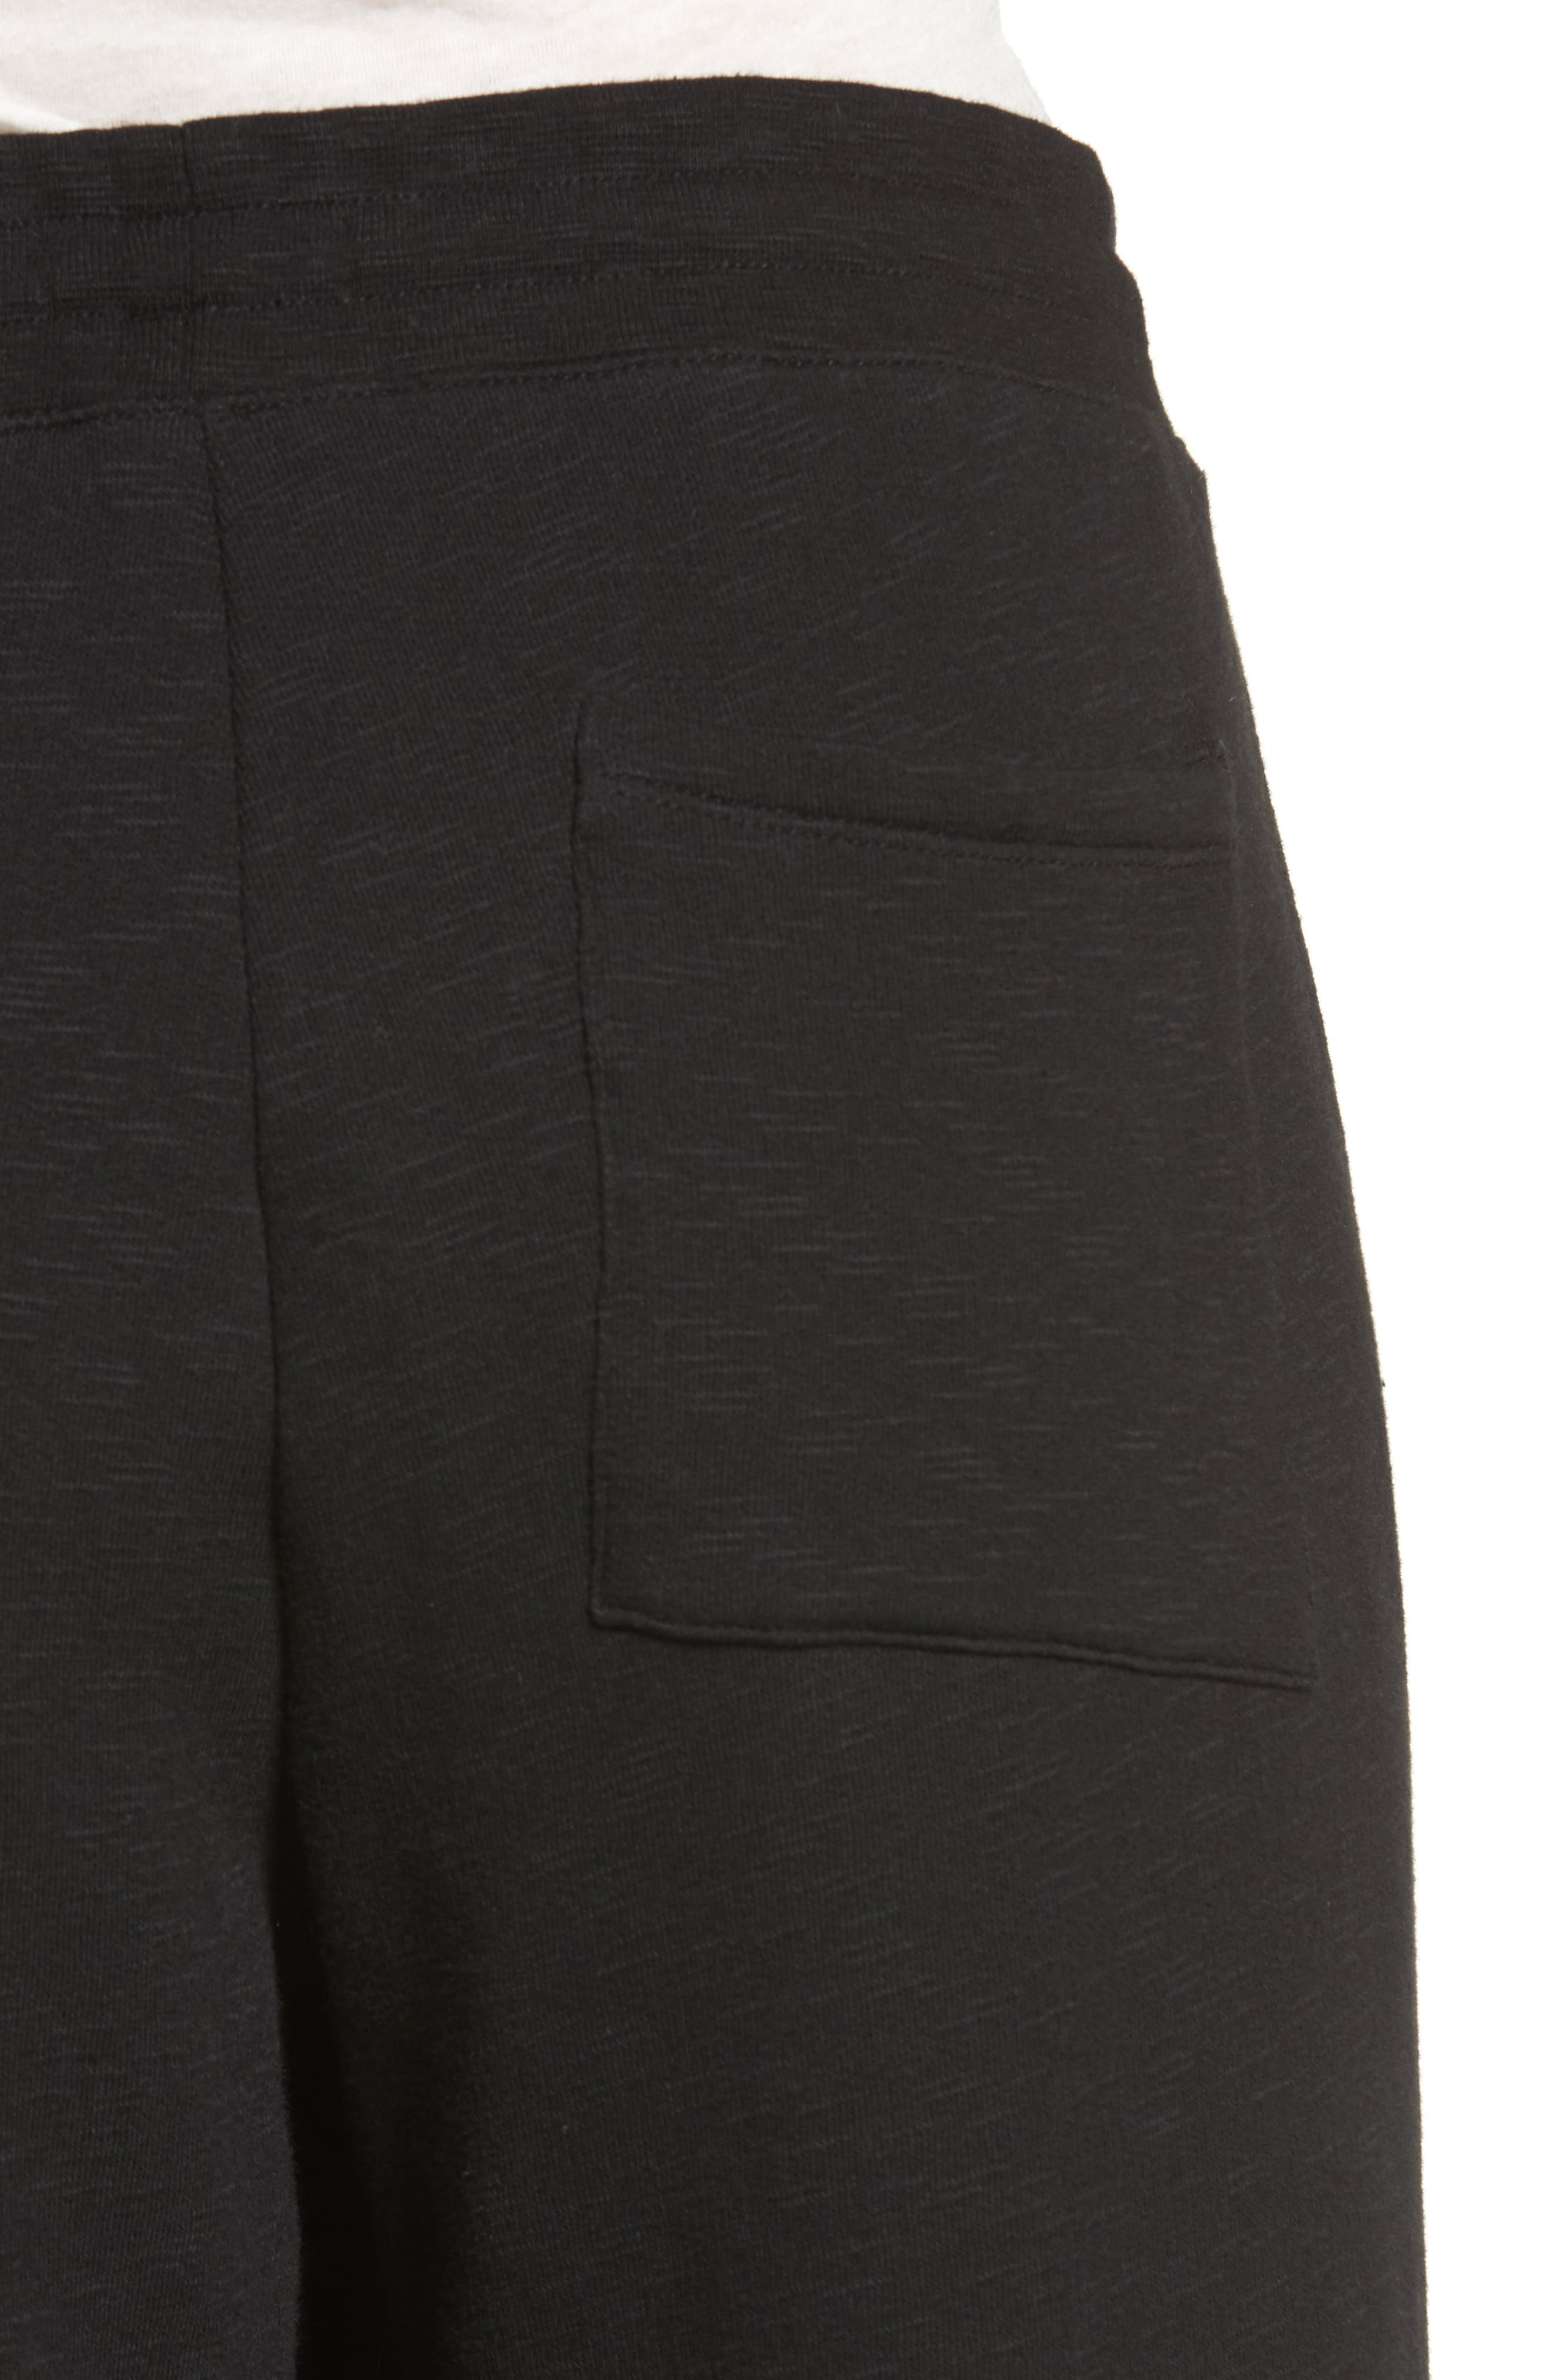 Step Hem Sweatpants,                             Alternate thumbnail 4, color,                             010